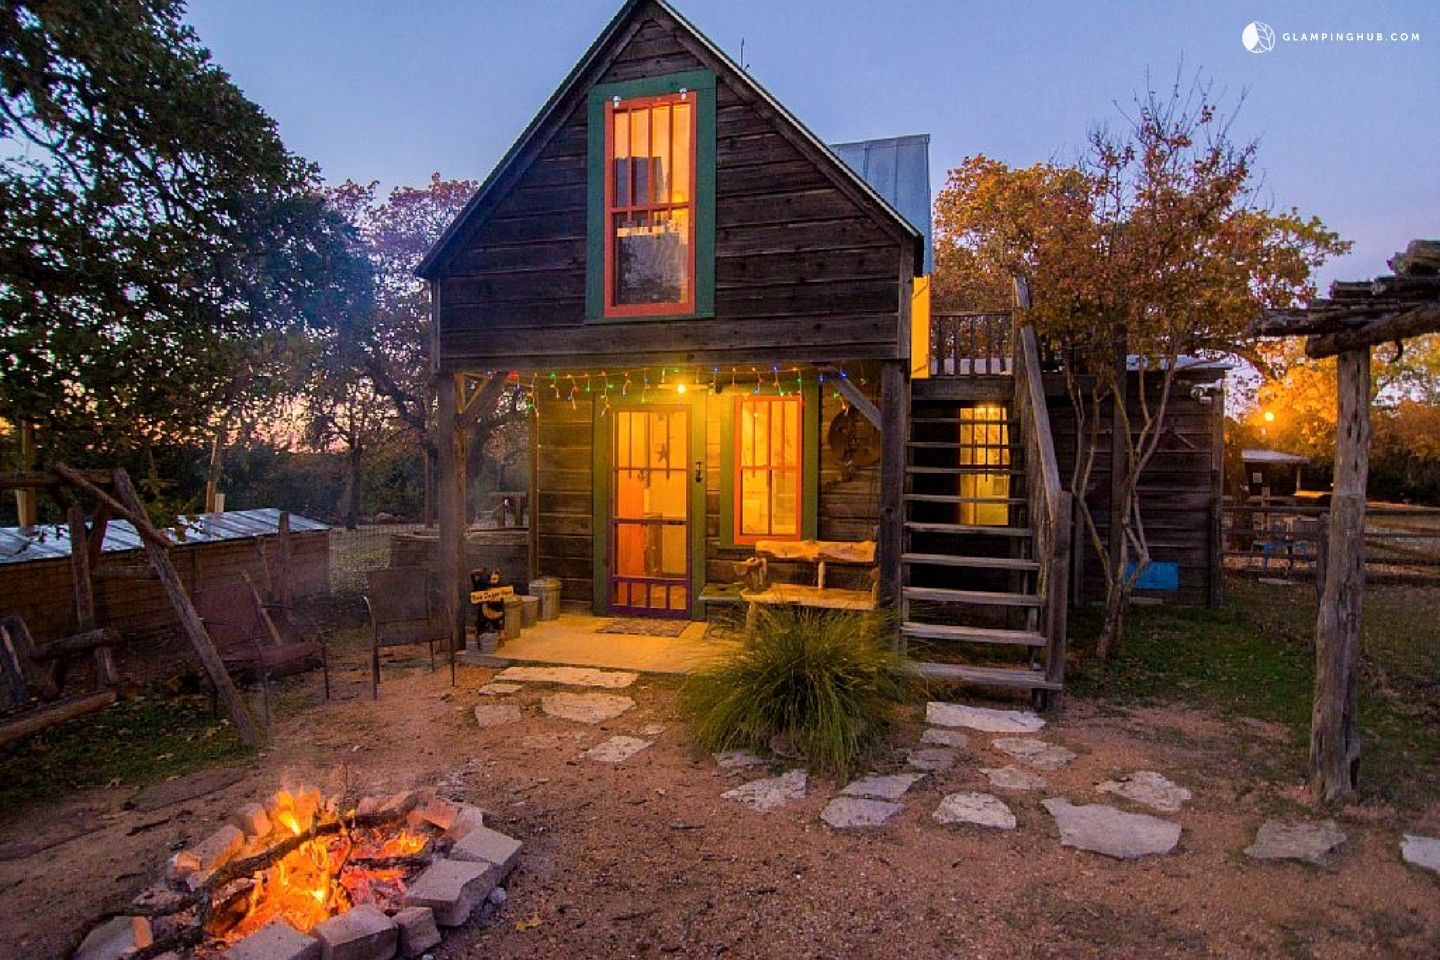 Quirky And Romantic Cabin Rental With Luxury Jacuzzi In